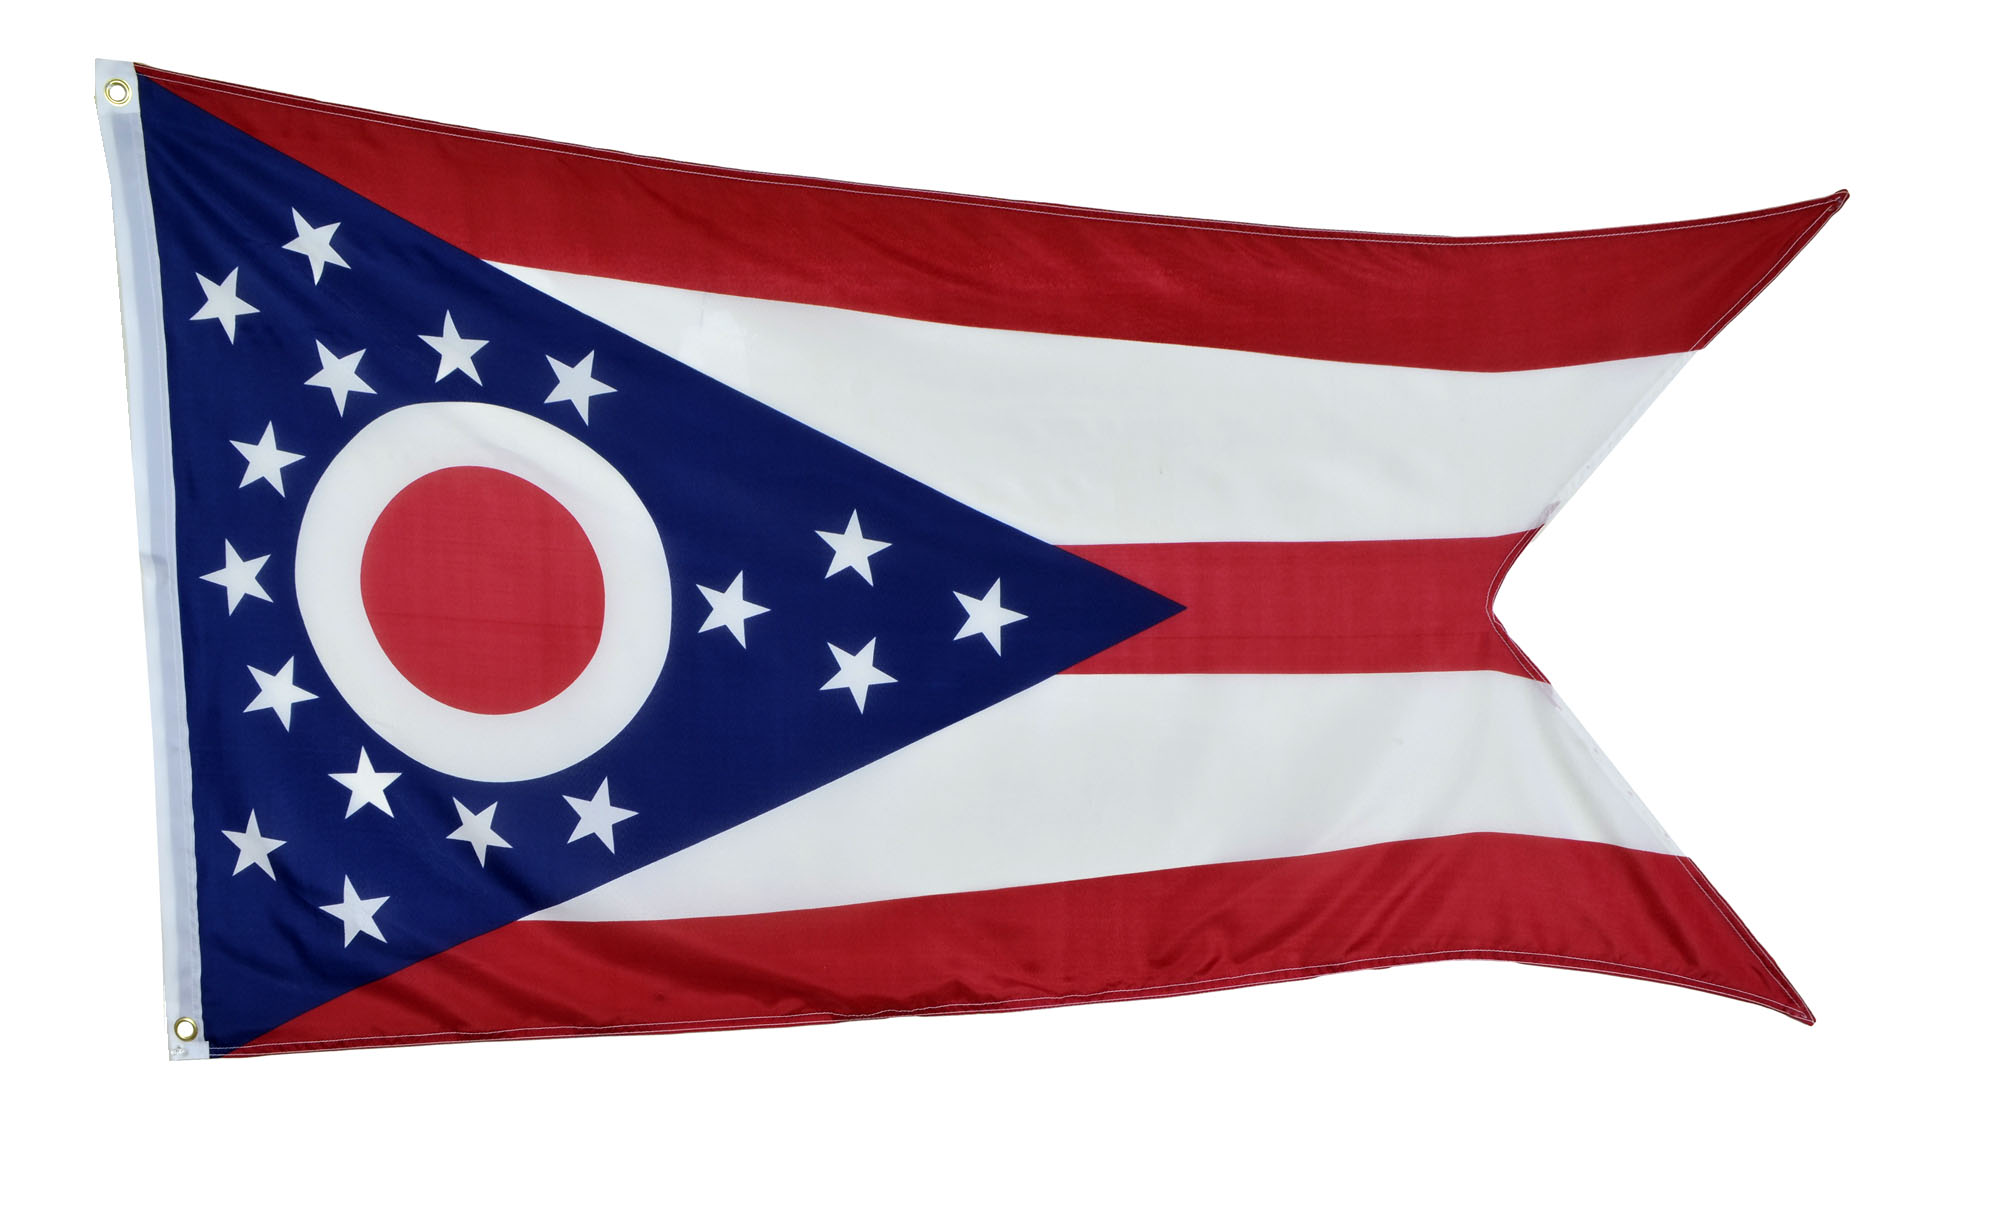 Shop72 US Ohio State Flags - Ohio Flag - 3x5' Flag from Sturdy 100D Polyester - Canvas Header Brass Grommets Double Stitched from Wind Side